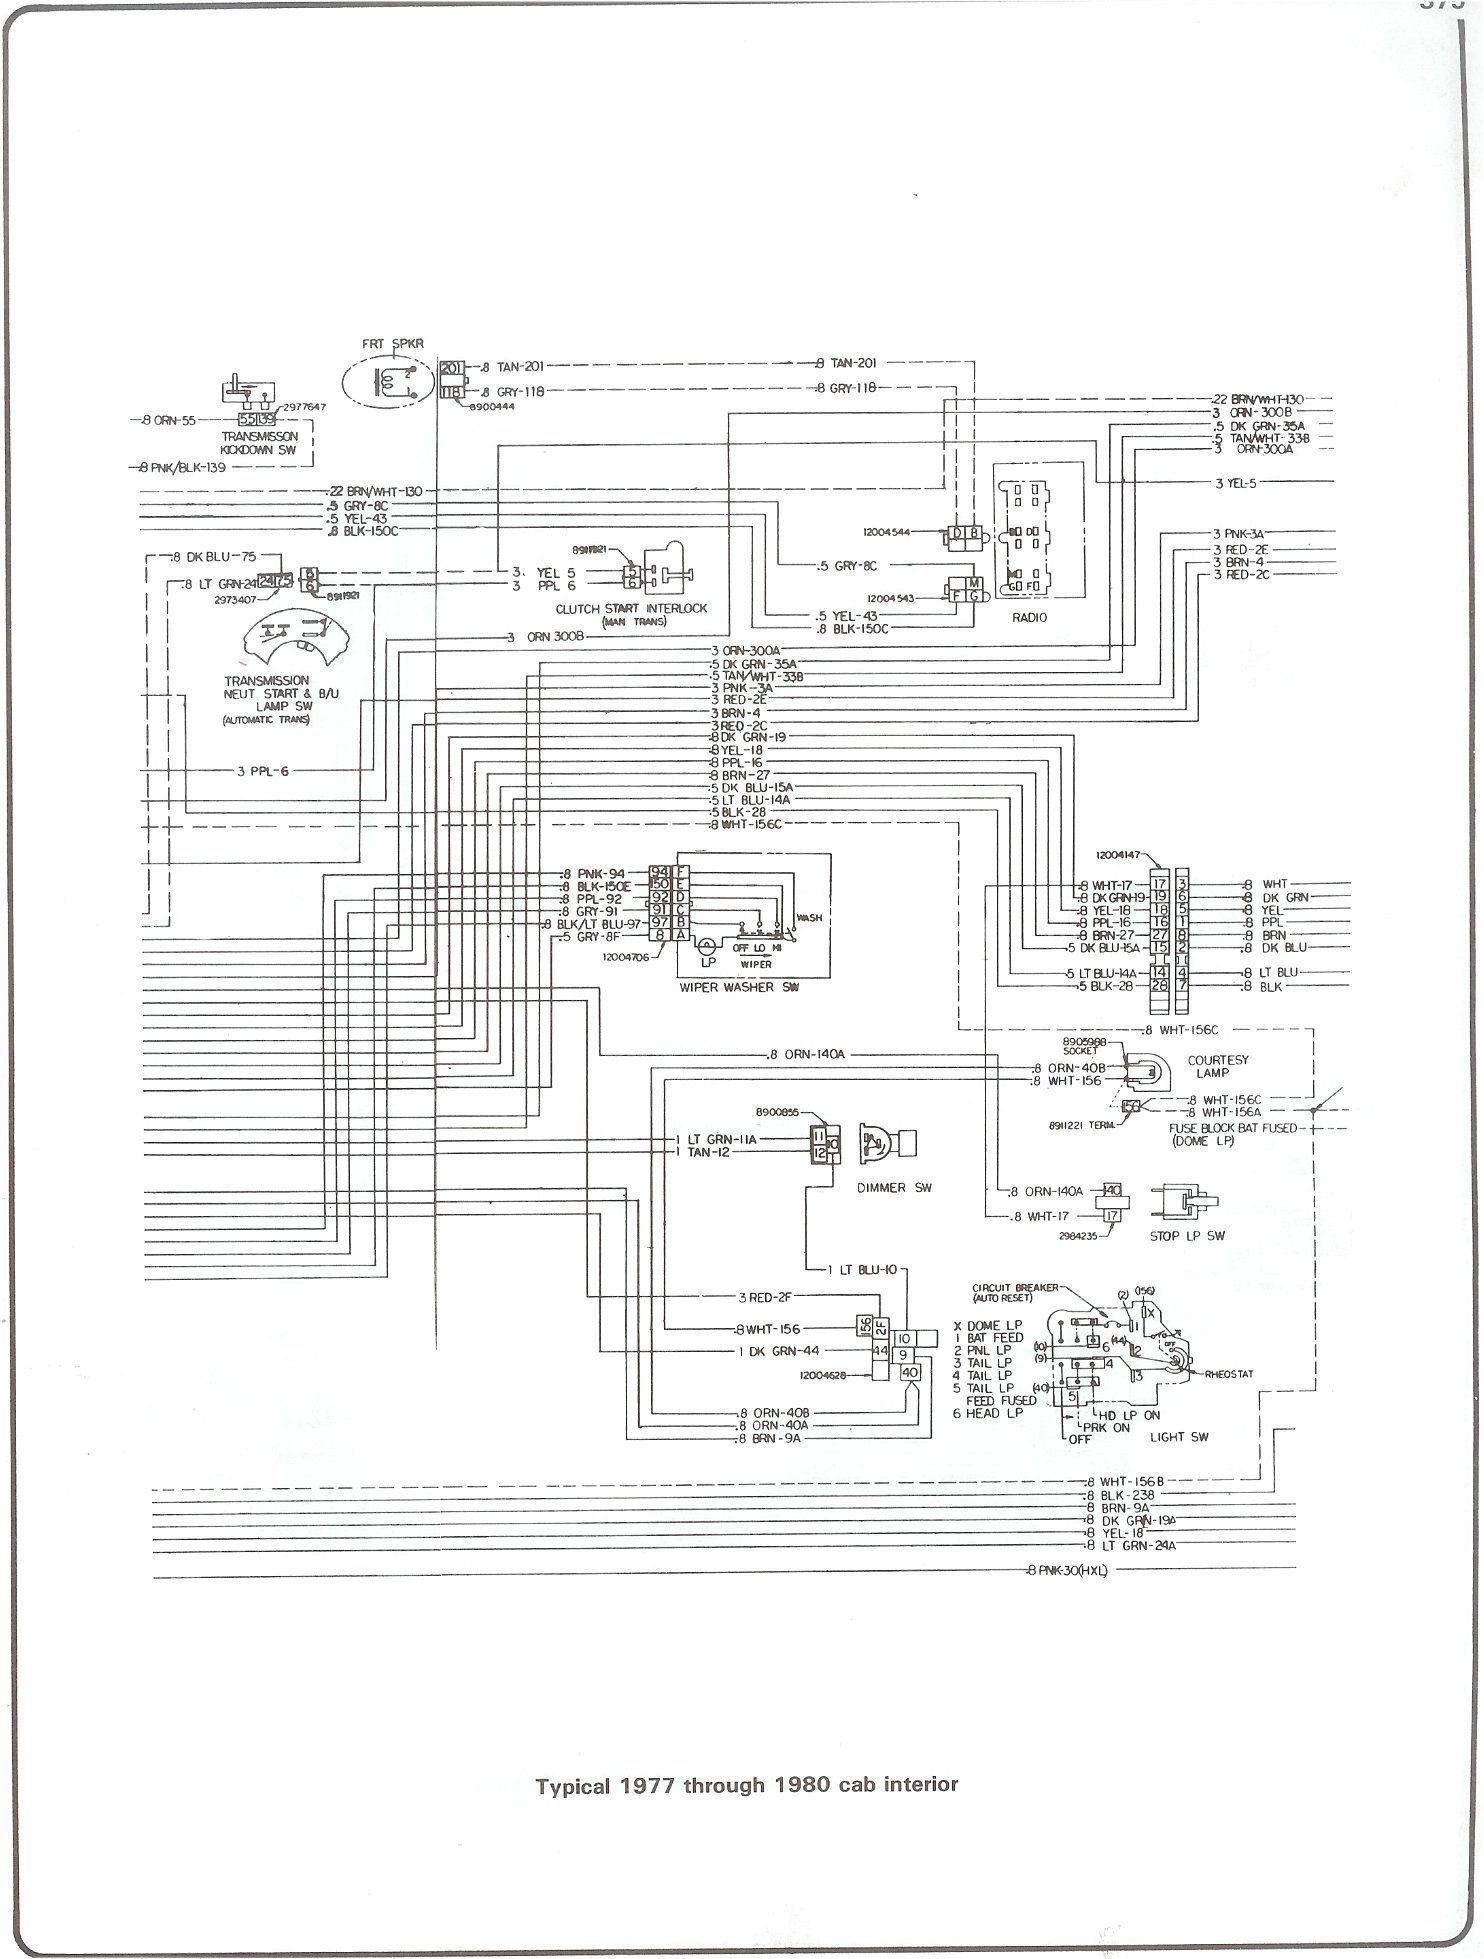 77 80_cab_inter complete 73 87 wiring diagrams 4.3 Vortec Wiring-Diagram at readyjetset.co